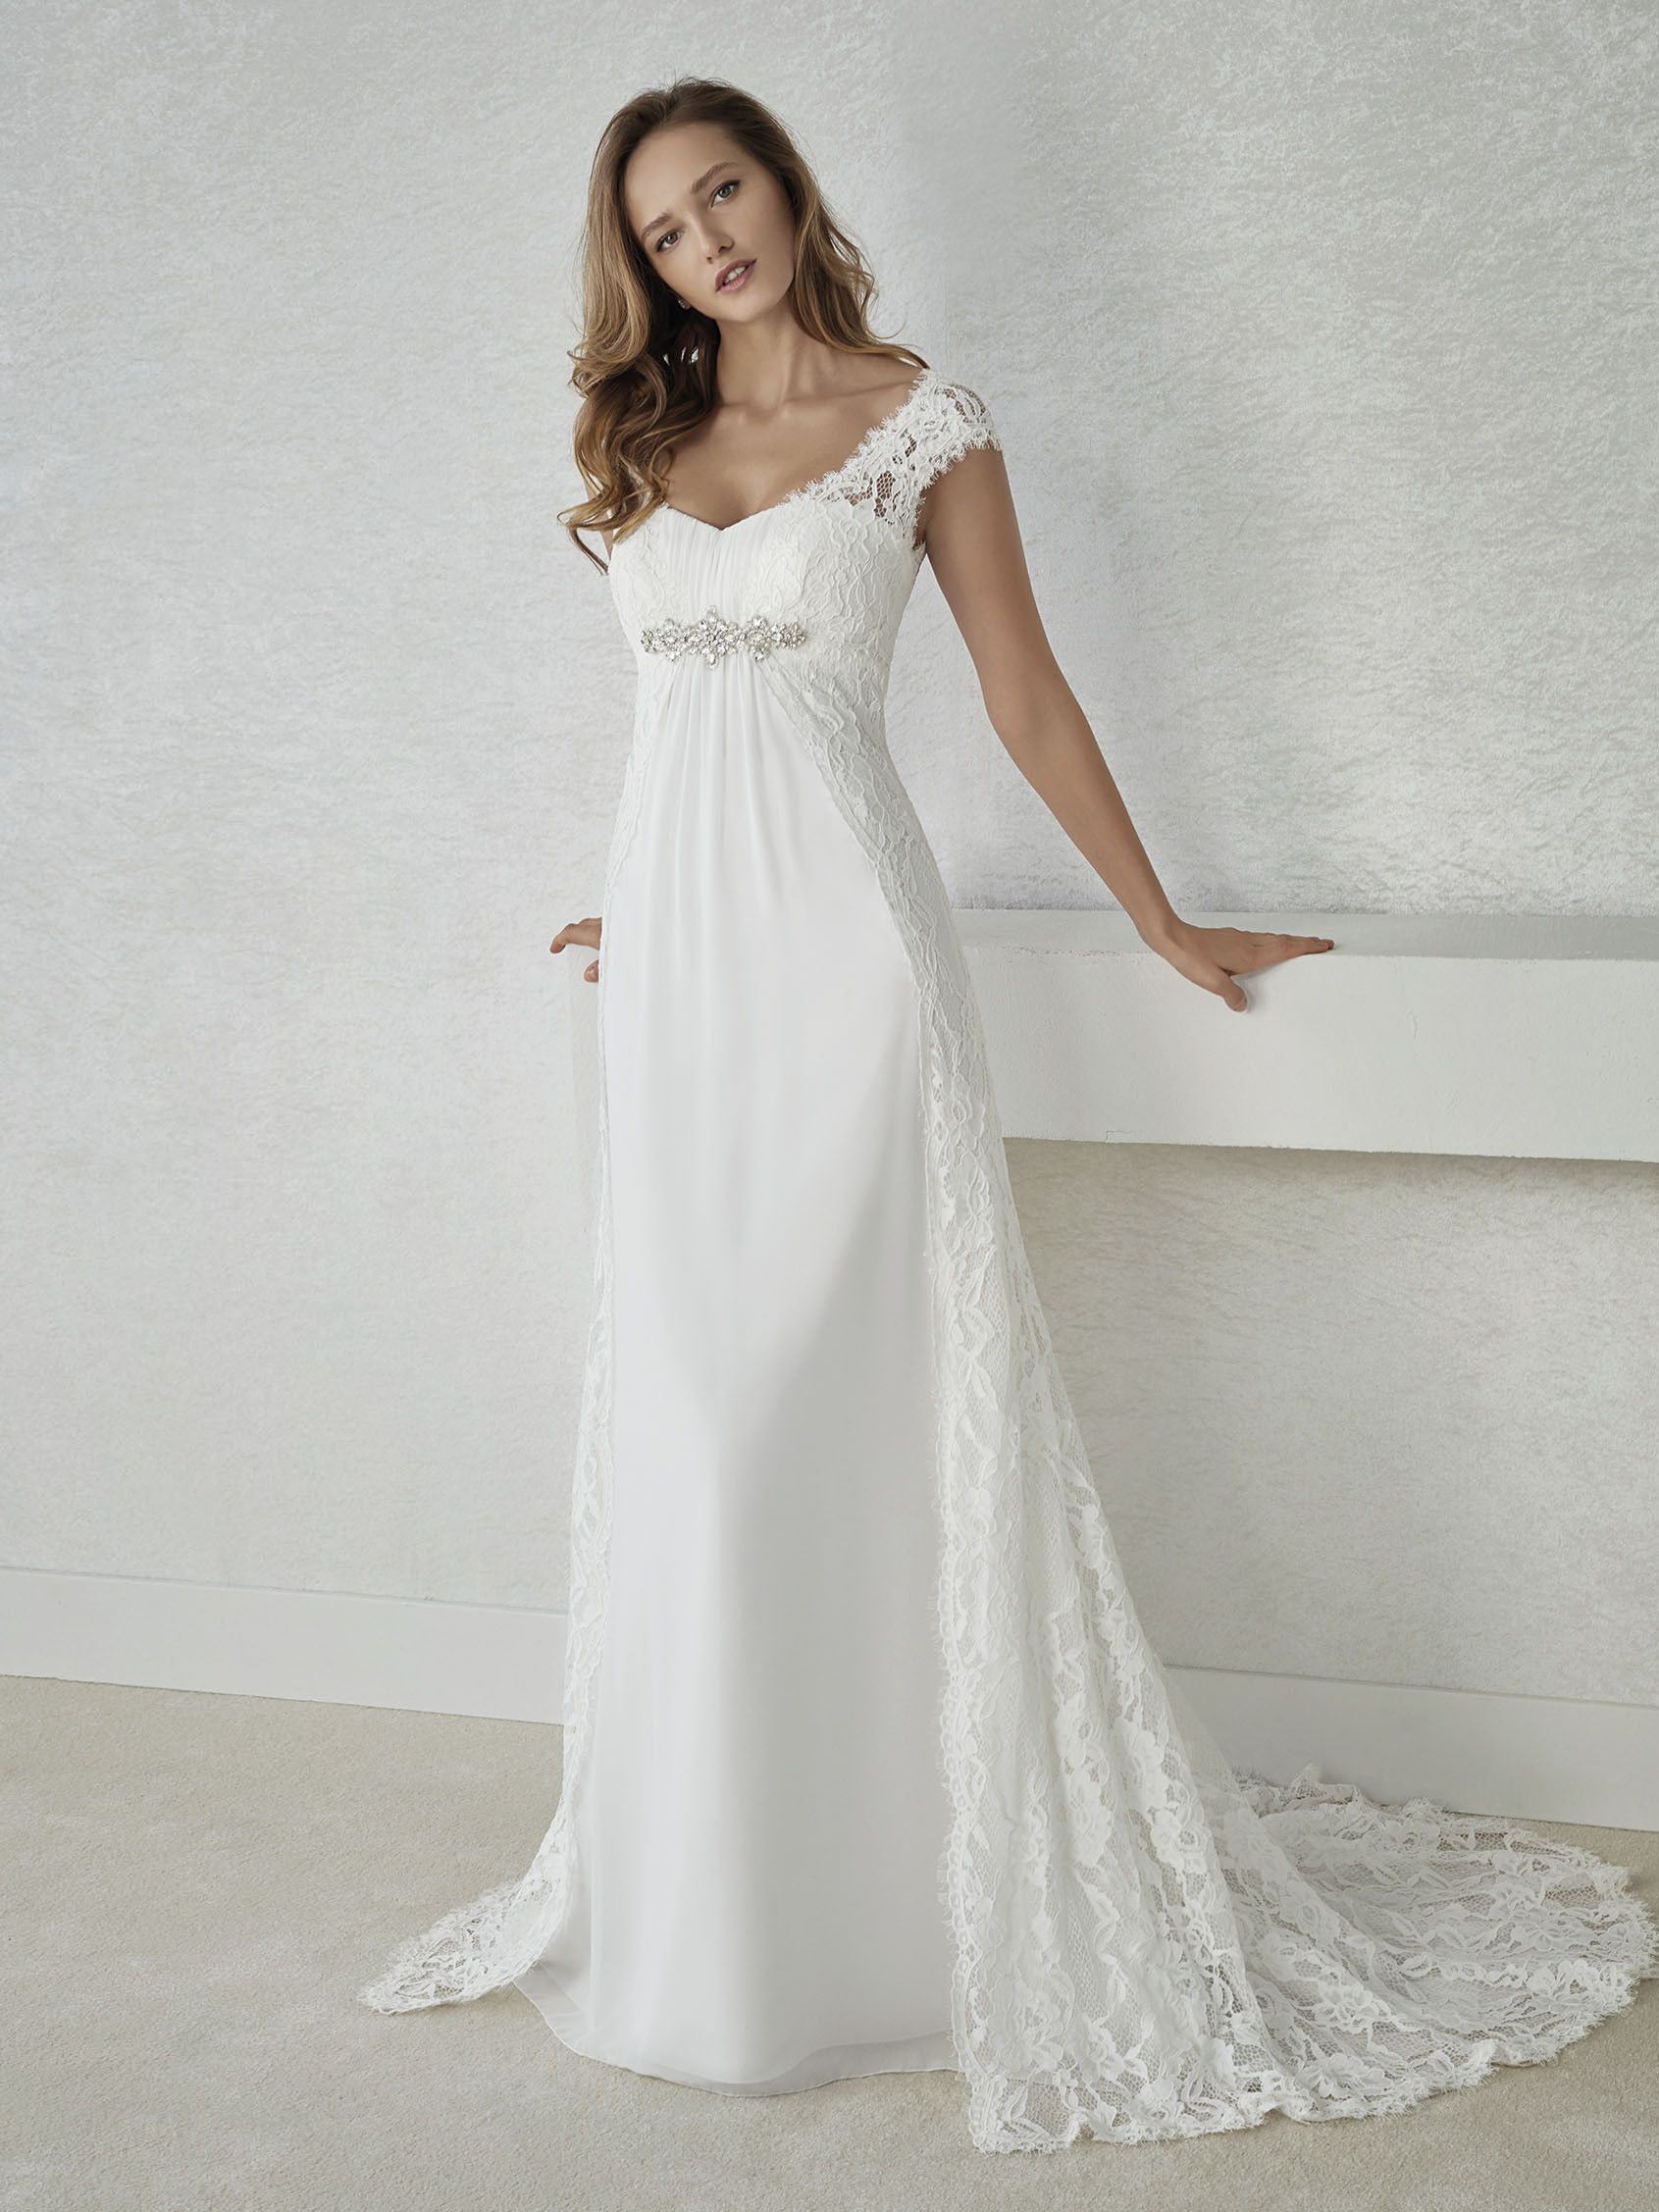 Vestiti Da Sposa For You.I Like The Lace Overskirt Train Fiel Abito Da Sposa Stile Impero